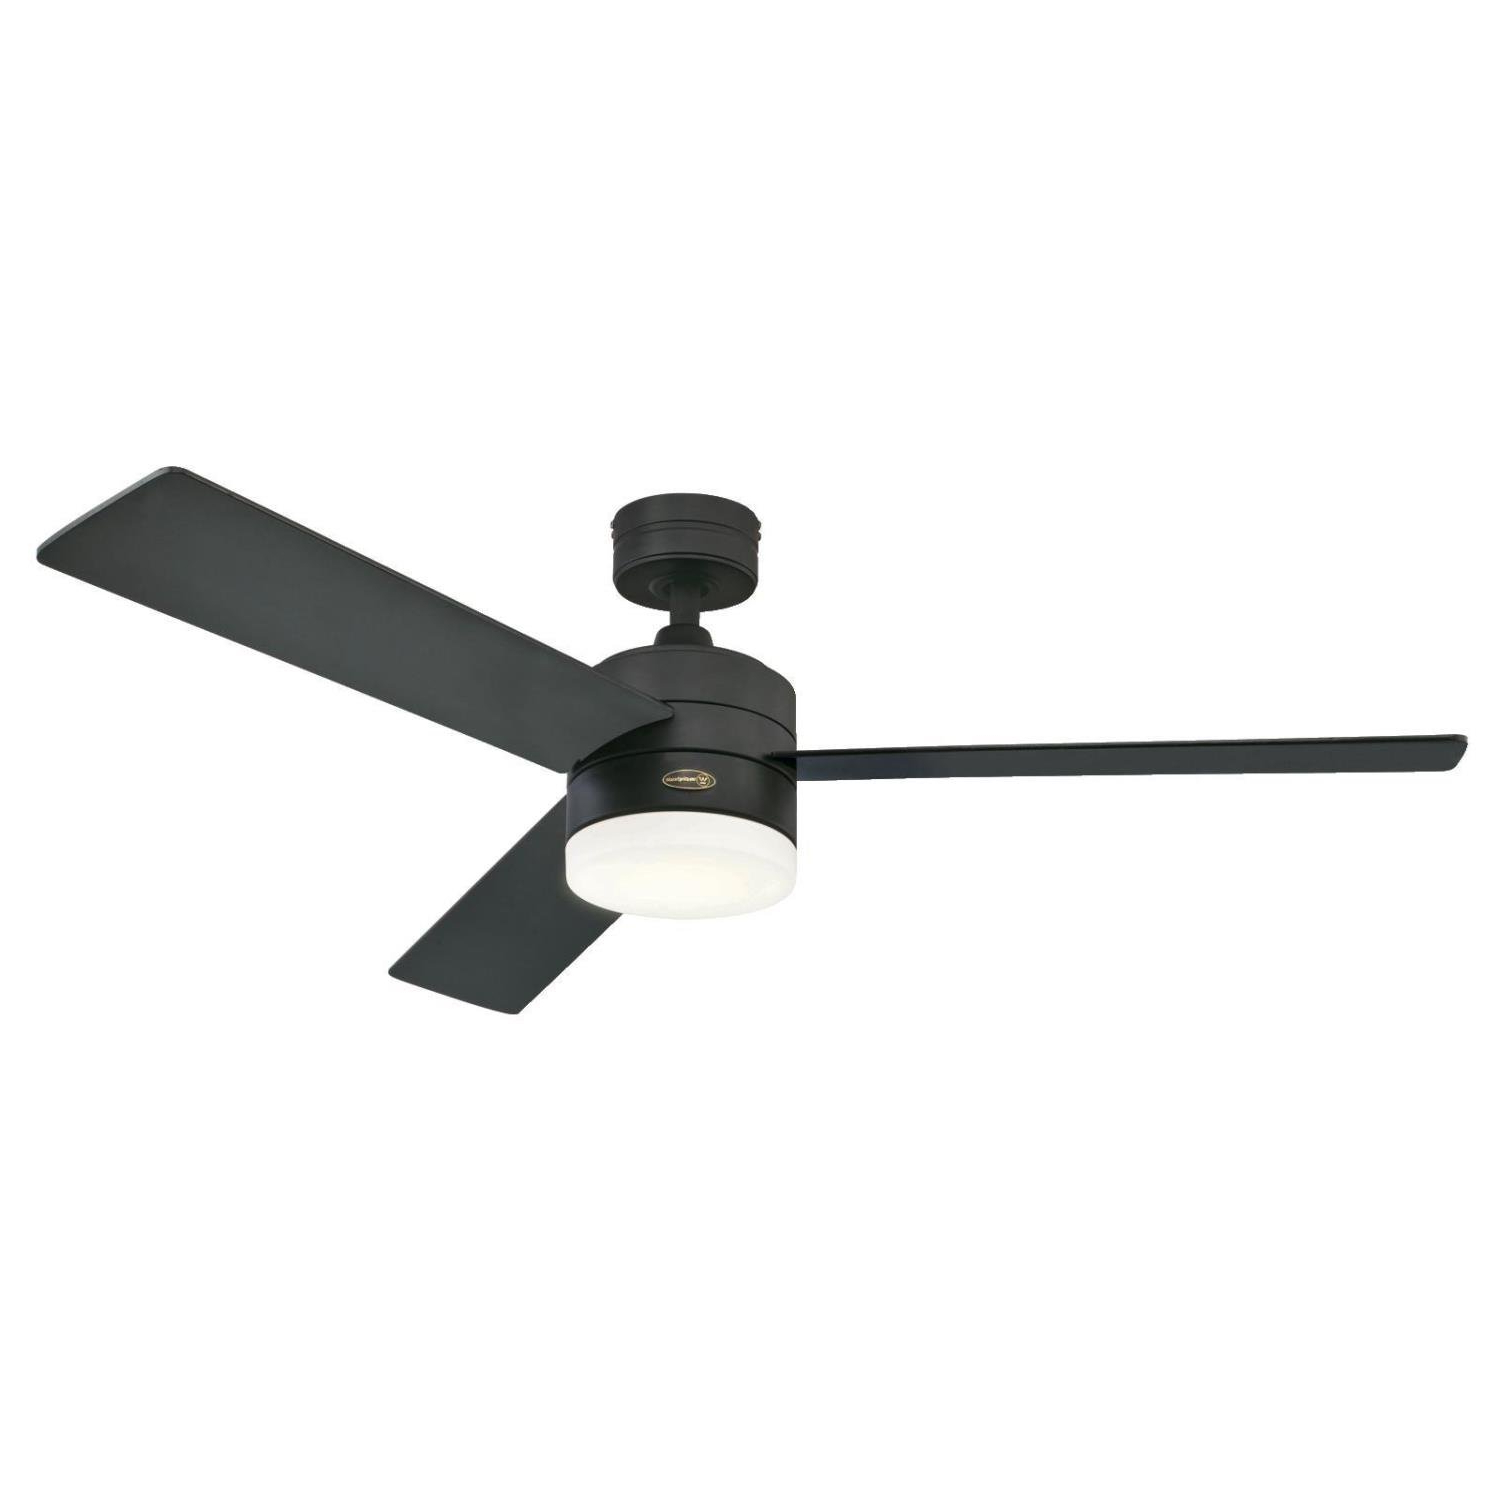 "Paige 3 Blade Led Ceiling Fans Regarding Famous 52"" Luray 3 Blade Led Ceiling Fan With Remote, Light Kit Included (Gallery 5 of 20)"